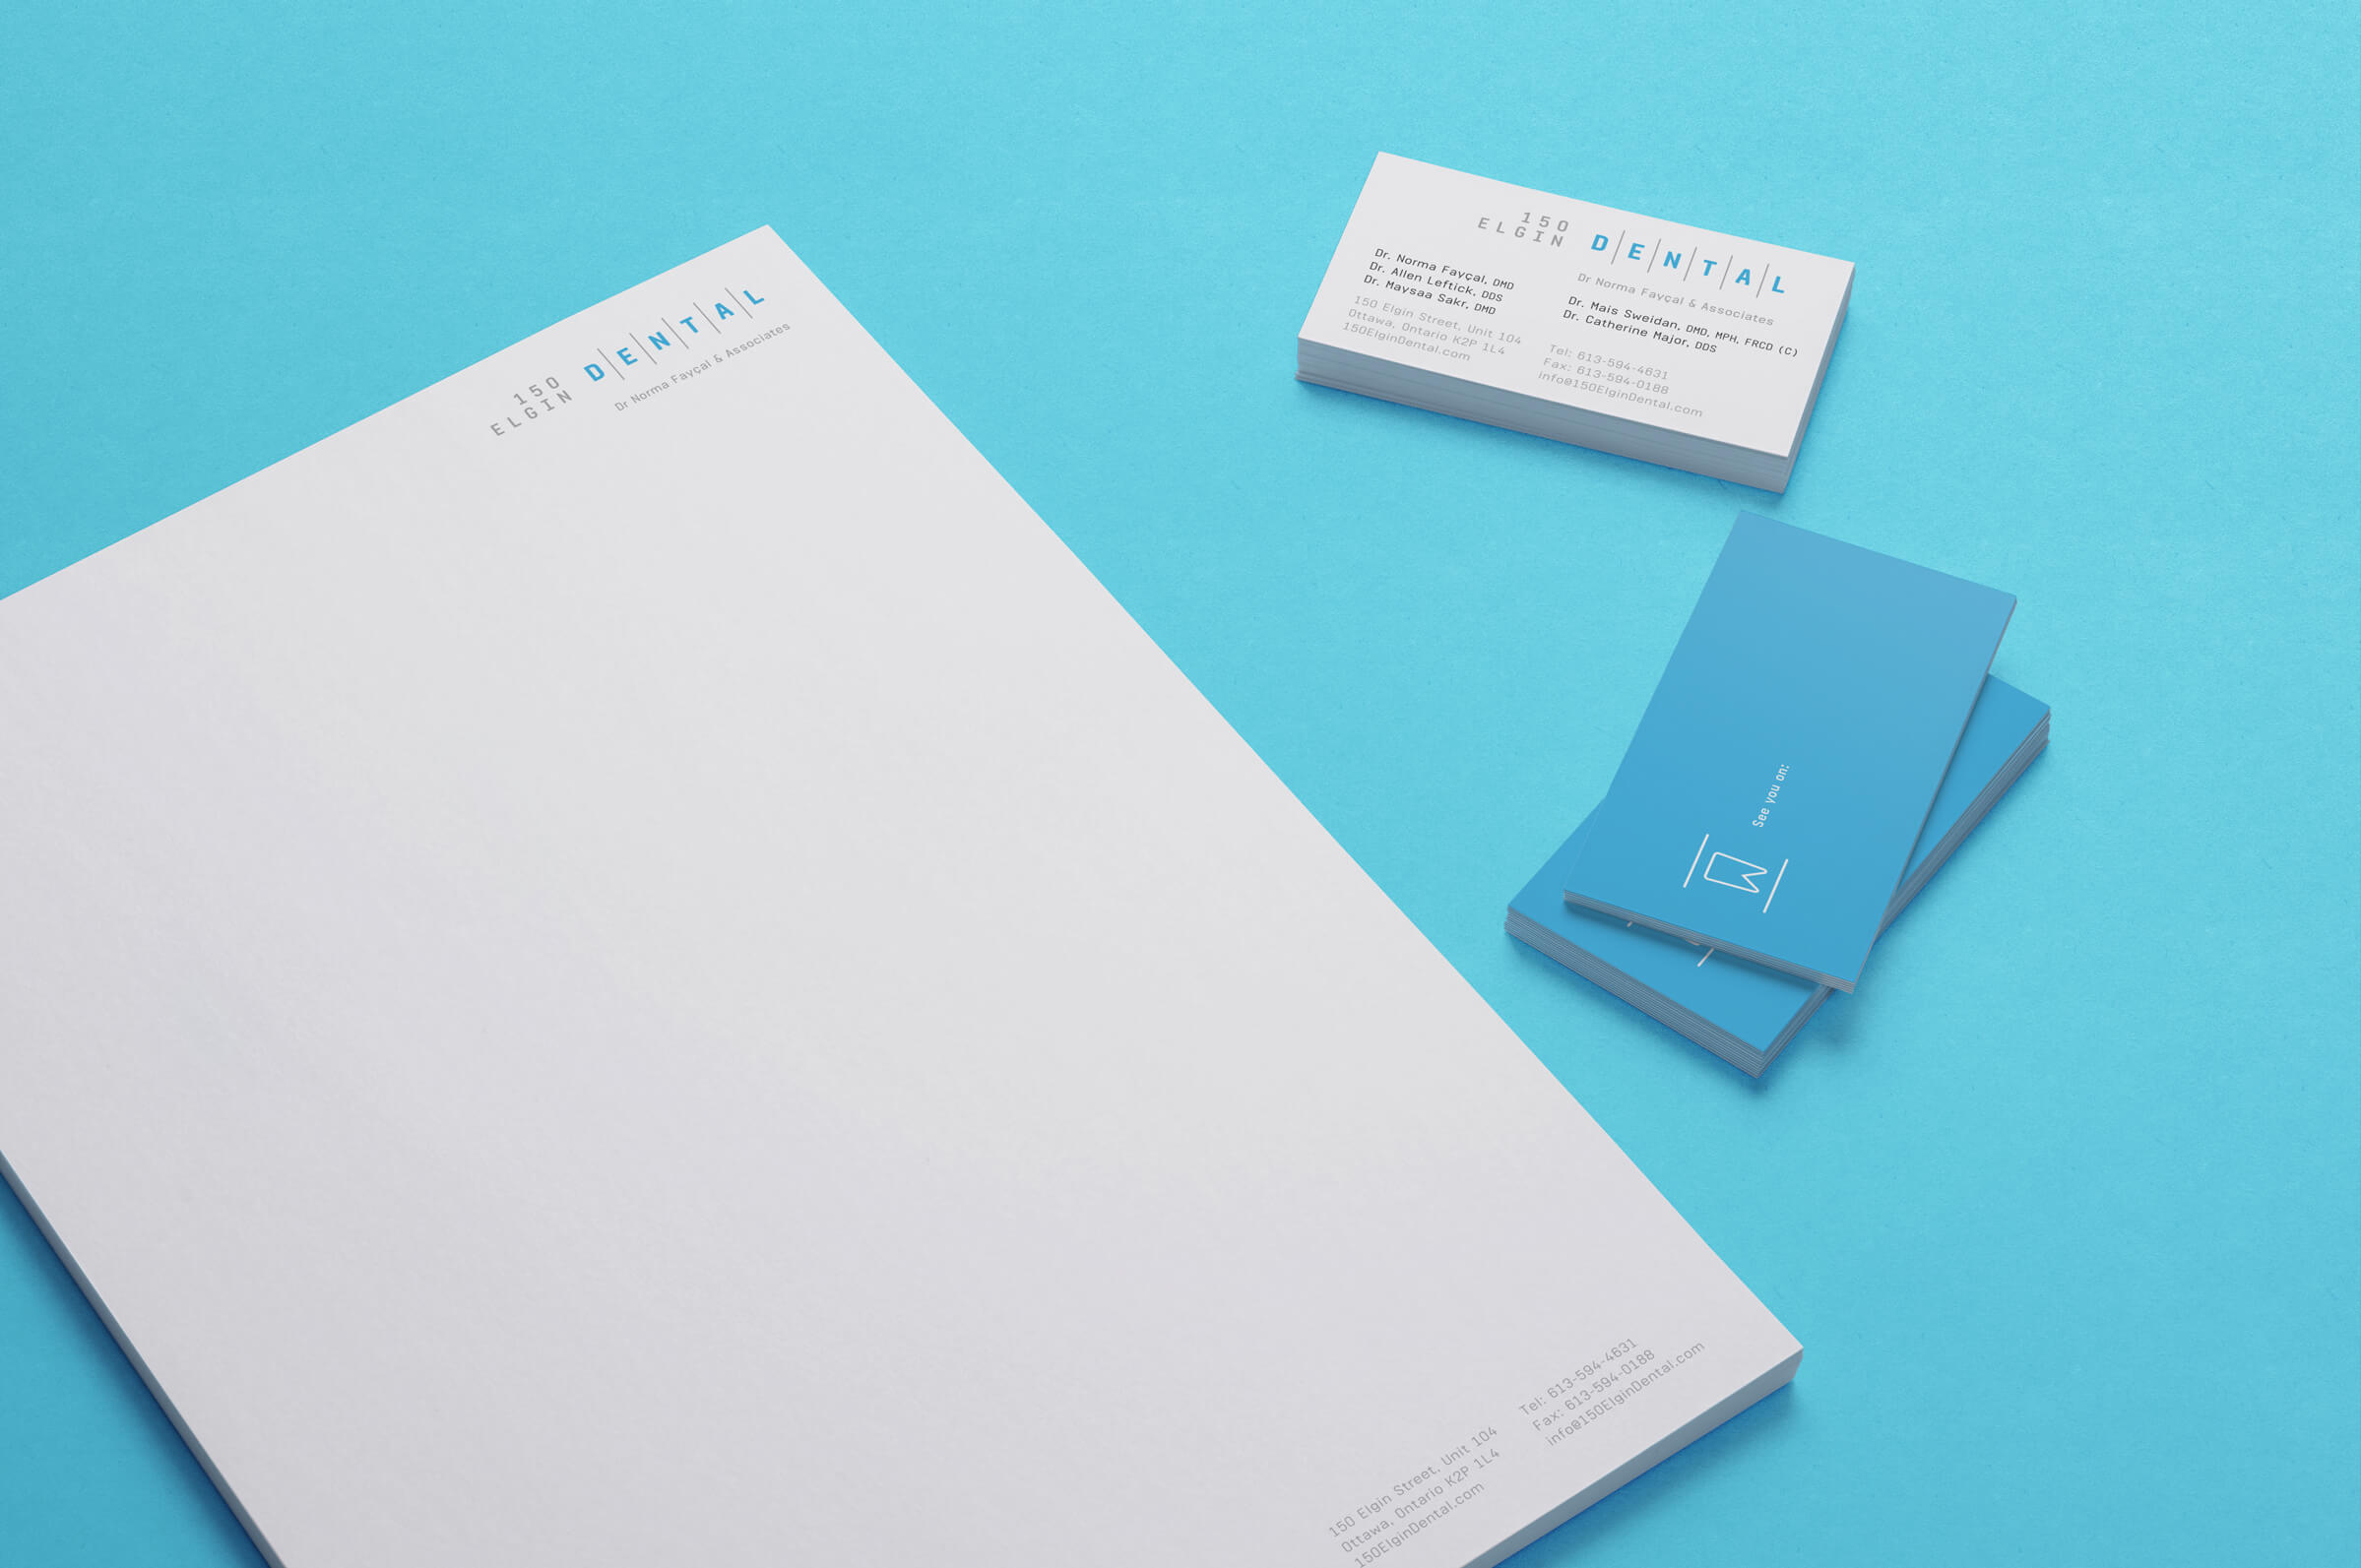 Stationery for 150 Elgin Dental, an Ottawa dentist by Graphic Design Studio idApostle